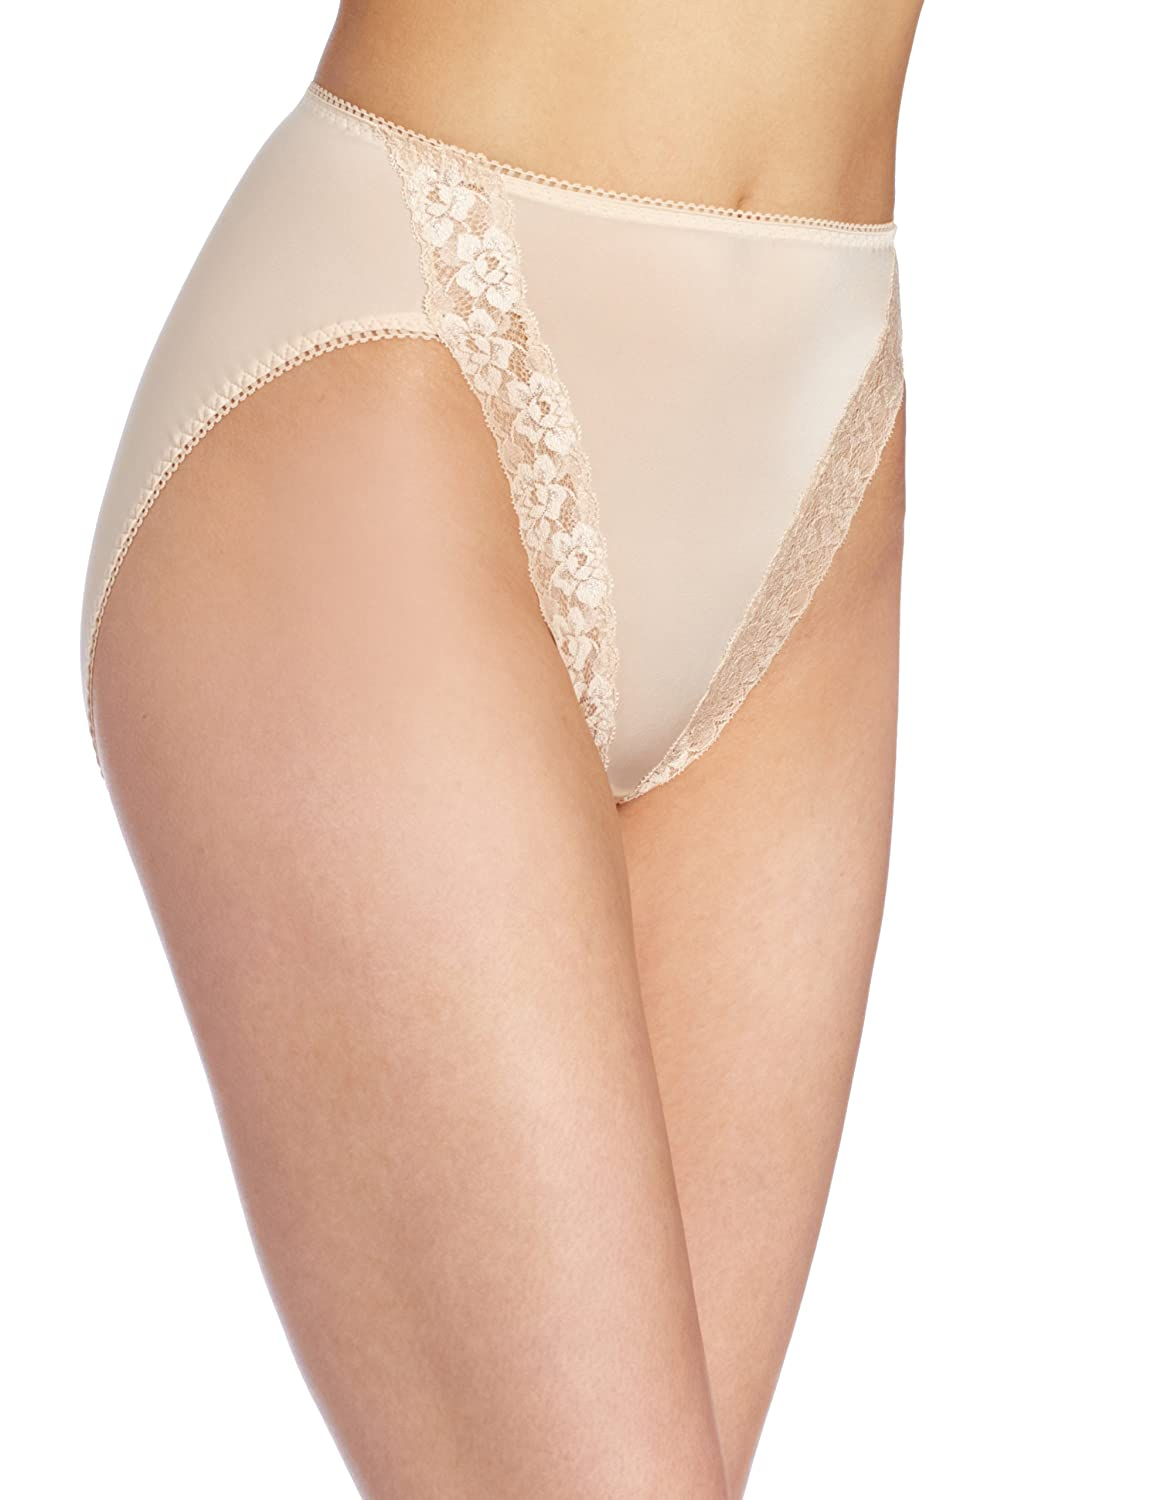 Wacoal Women's Bodysuede Lace Hi-Cut Panty Brief Panty Wacoal Women' s IA 89371